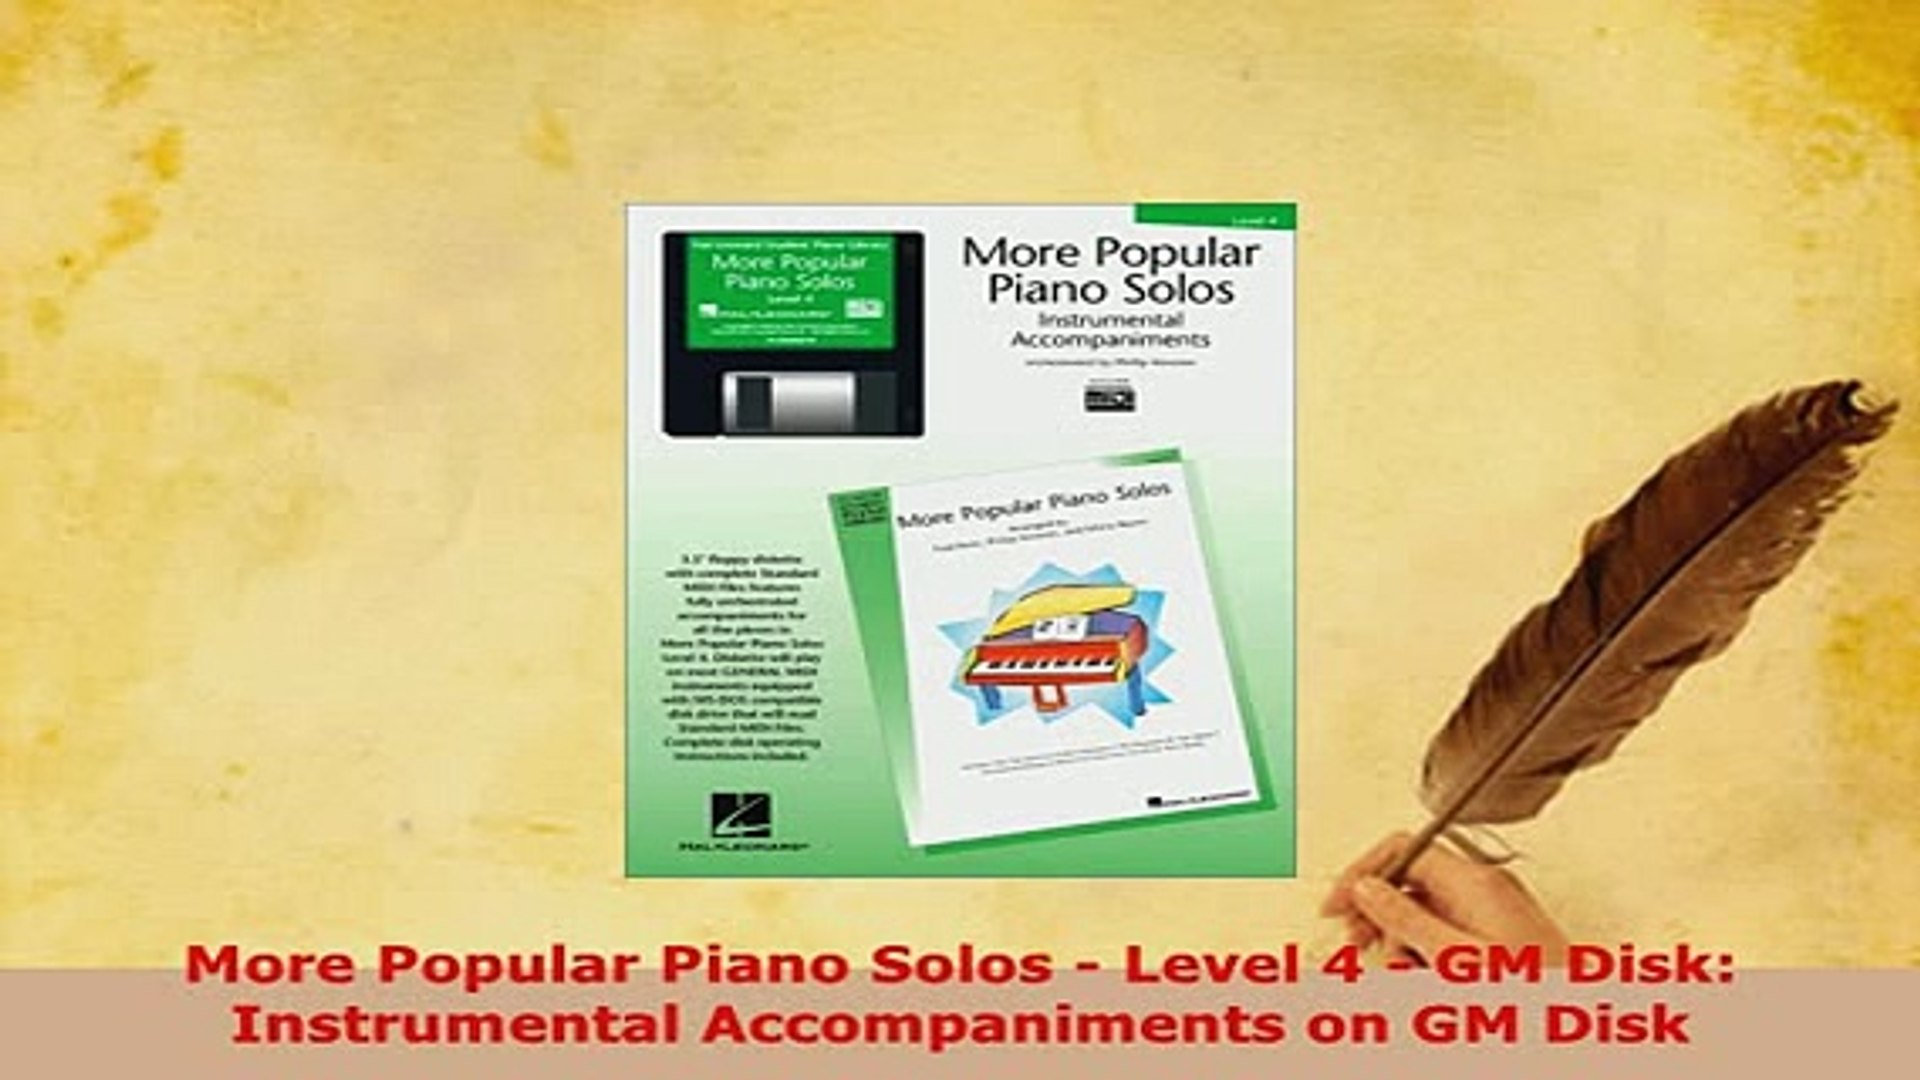 Download  More Popular Piano Solos  Level 4  GM Disk Instrumental Accompaniments on GM Disk Free Boo